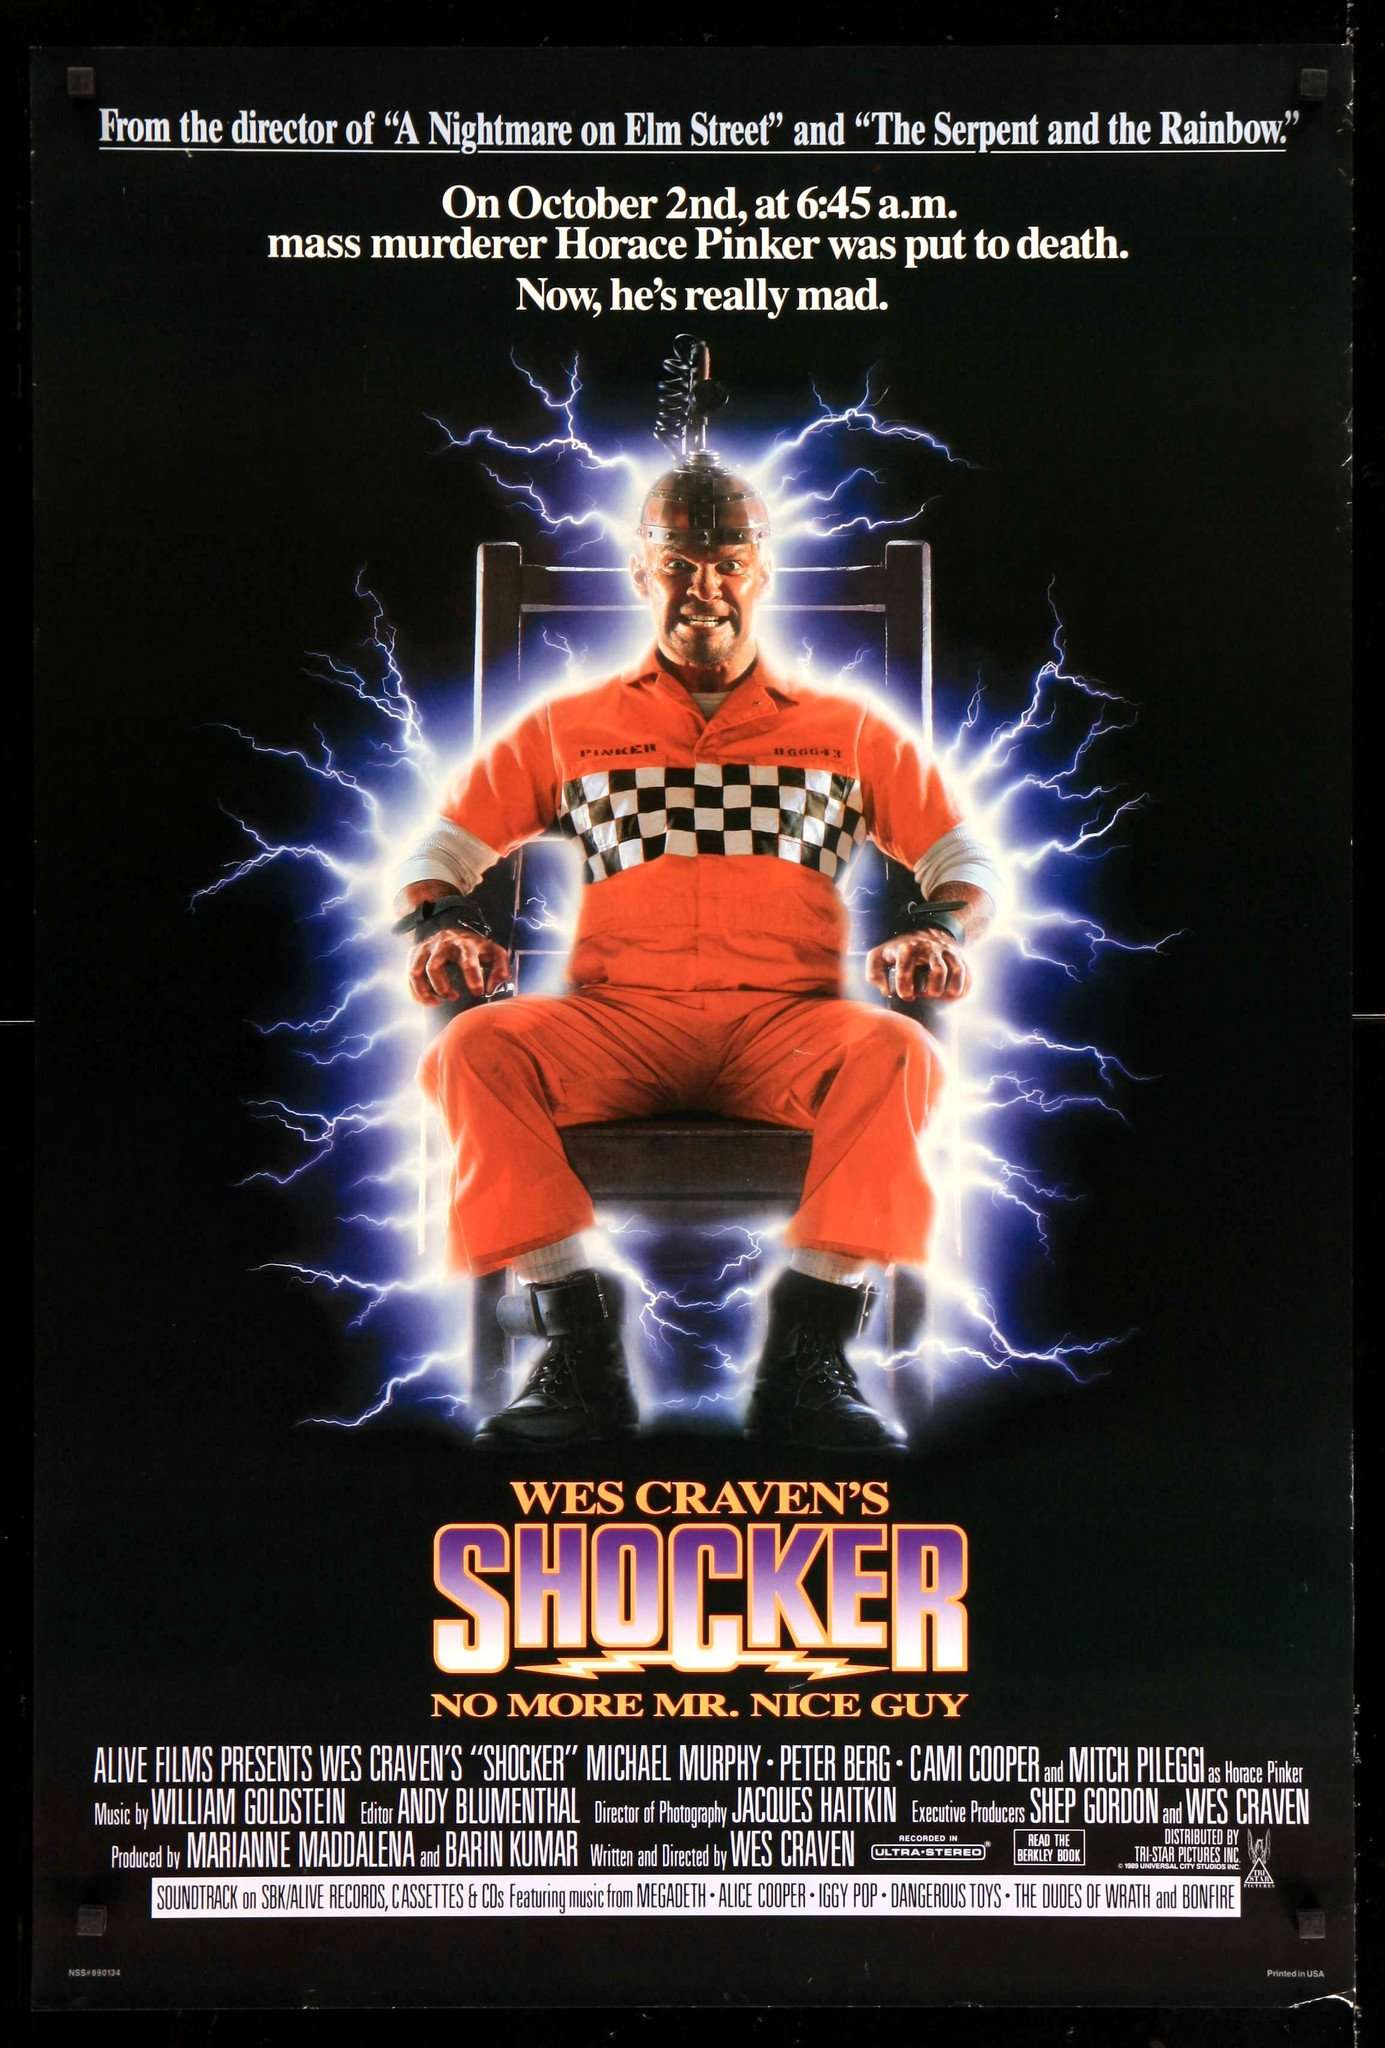 [Image: Shocker_original_film_art_spo_5000x.jpg?v=1568812864]